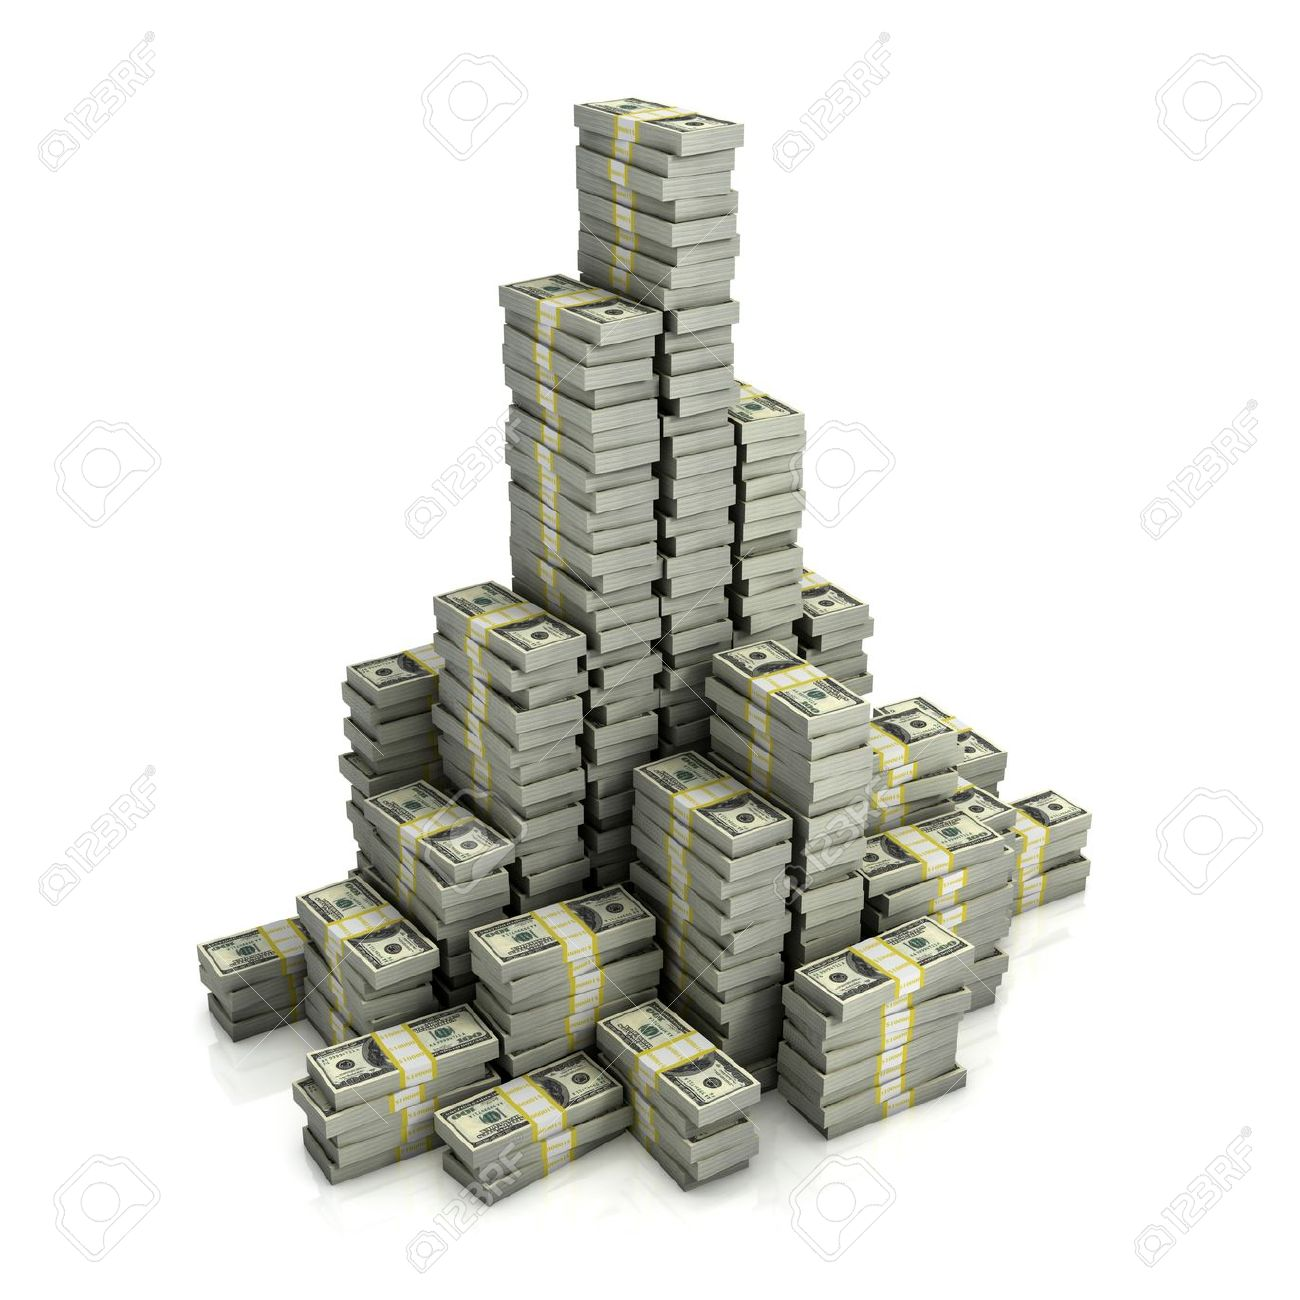 https://previews.123rf.com/images/koya79/koya791305/koya79130500112/19776432-dollar-stacks-Stock-Photo-money-cash.jpg